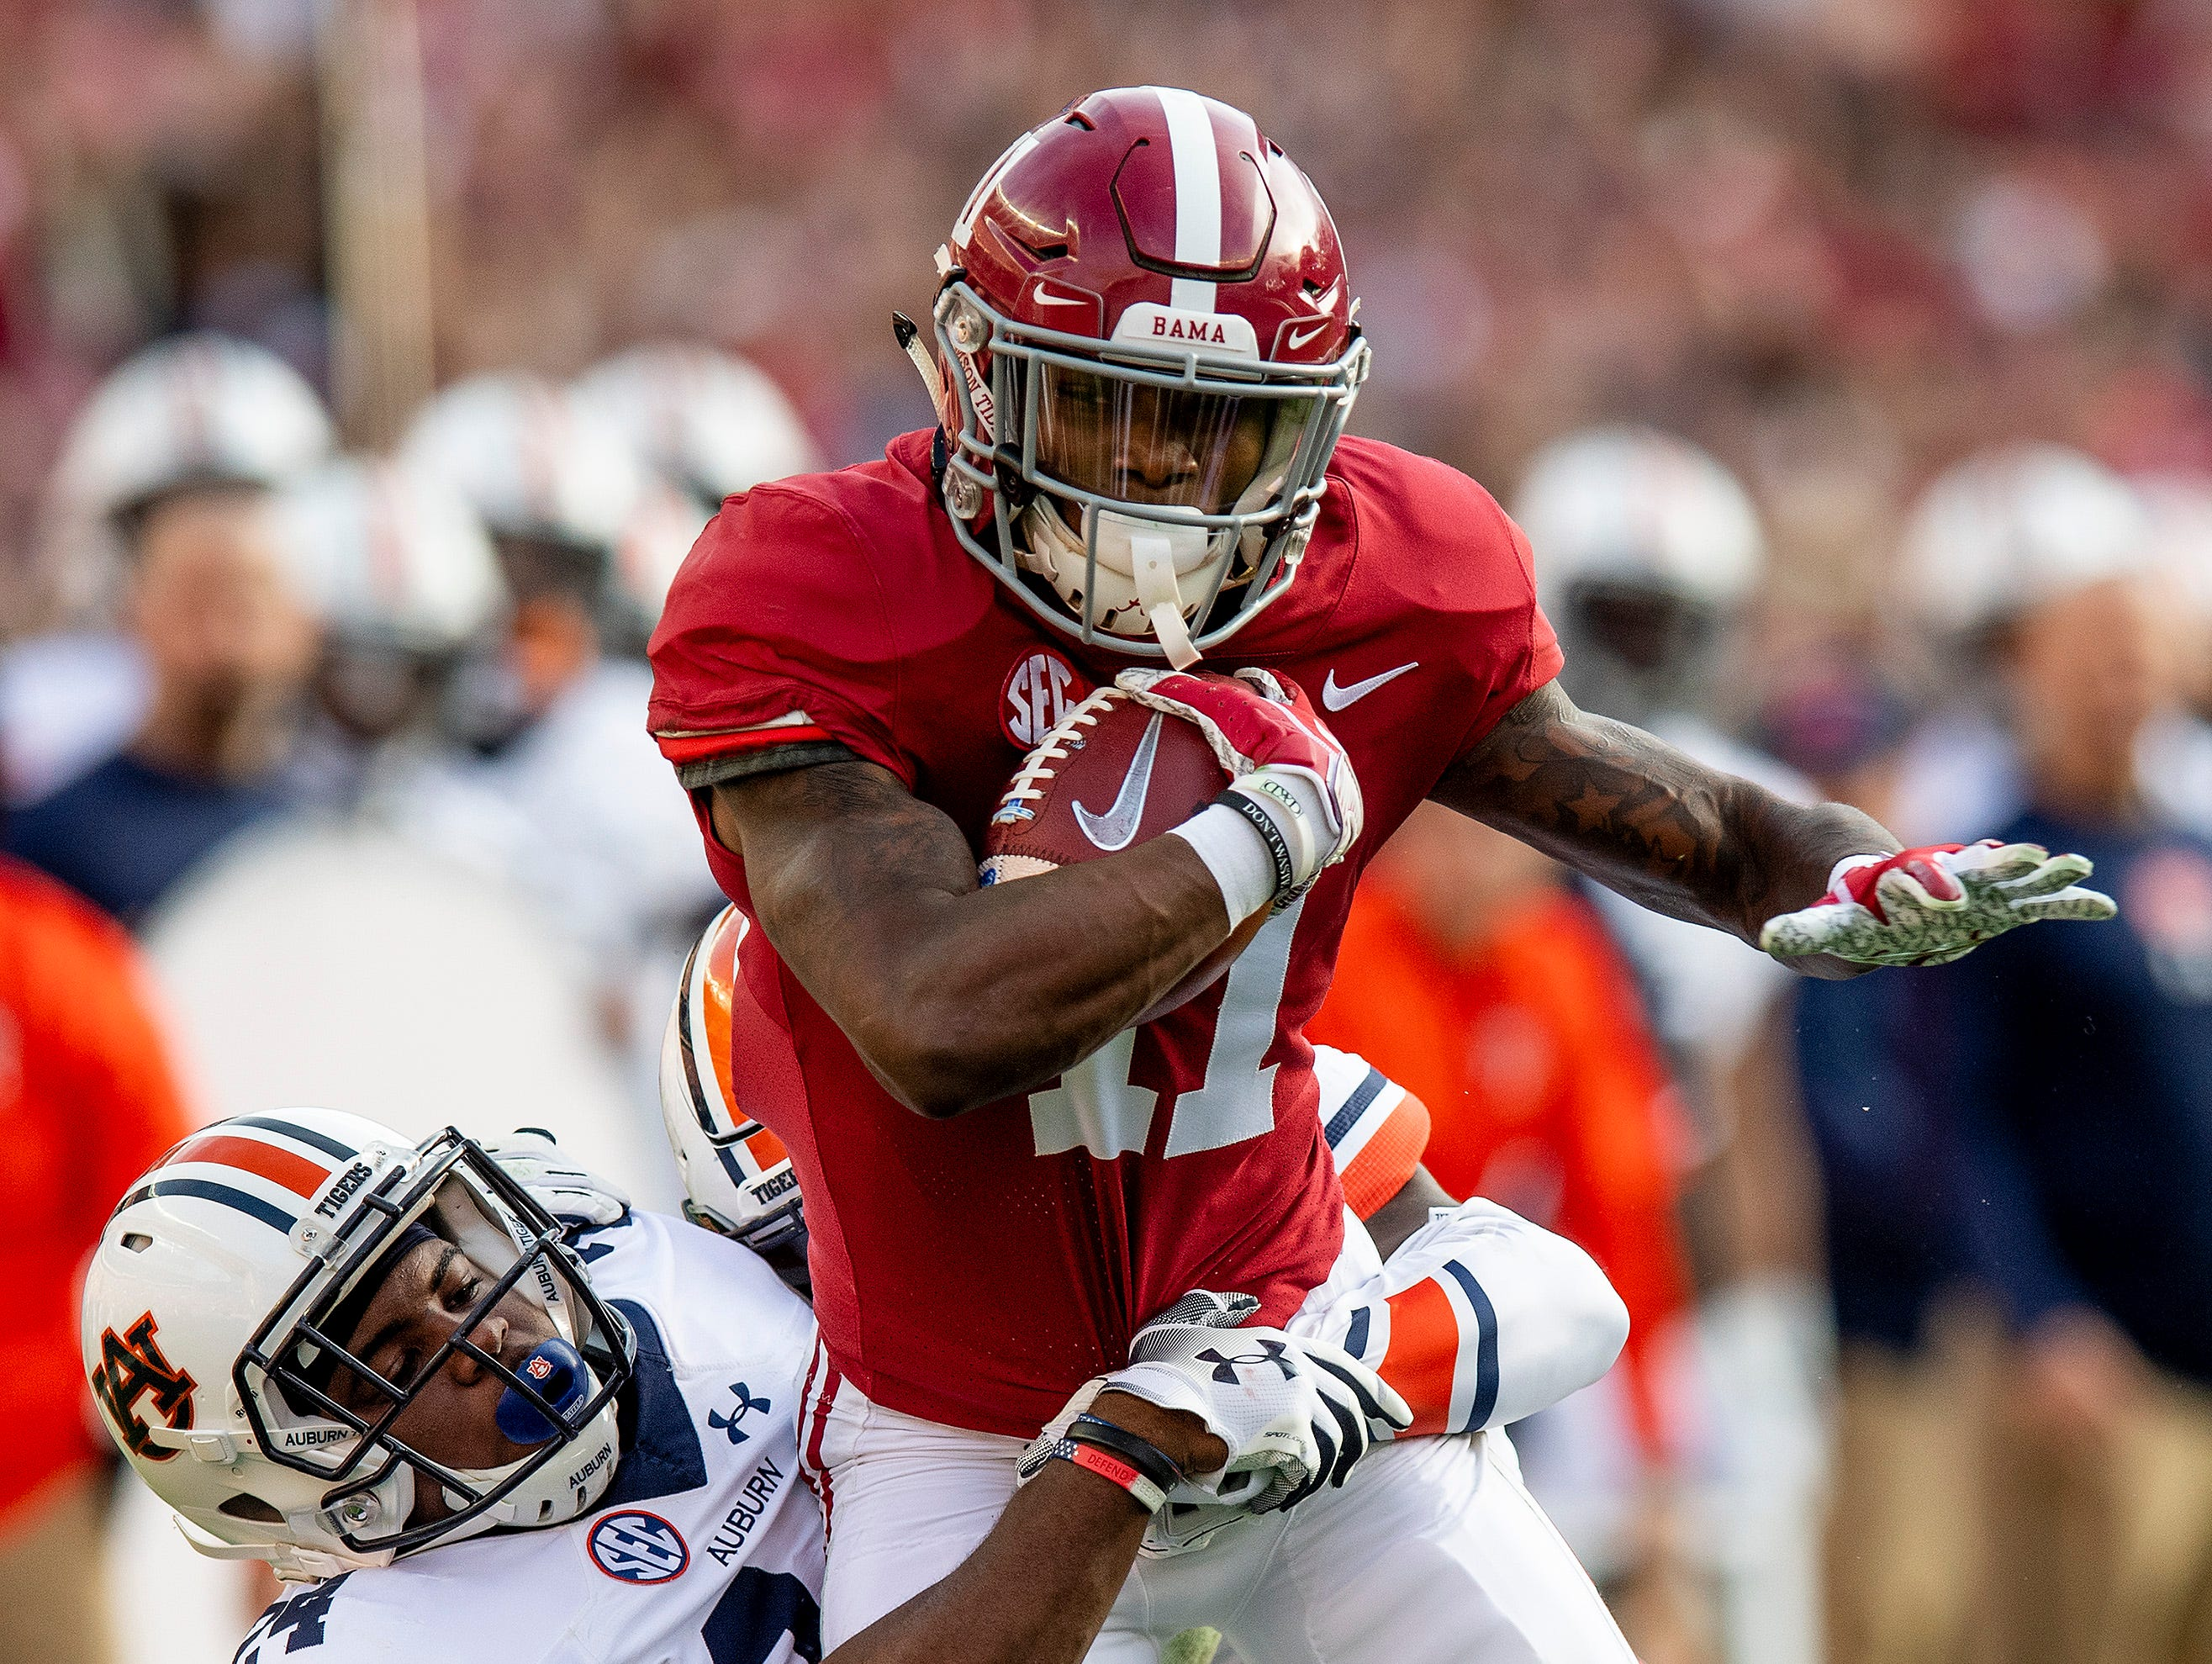 Alabama wide receiver Henry Ruggs, III, (11) is stopped by Auburn defensive back Daniel Thomas (24) in first half action during the Iron Bowl at Bryant-Denny Stadium in Tuscaloosa, Ala., on Saturday November 24, 2018.